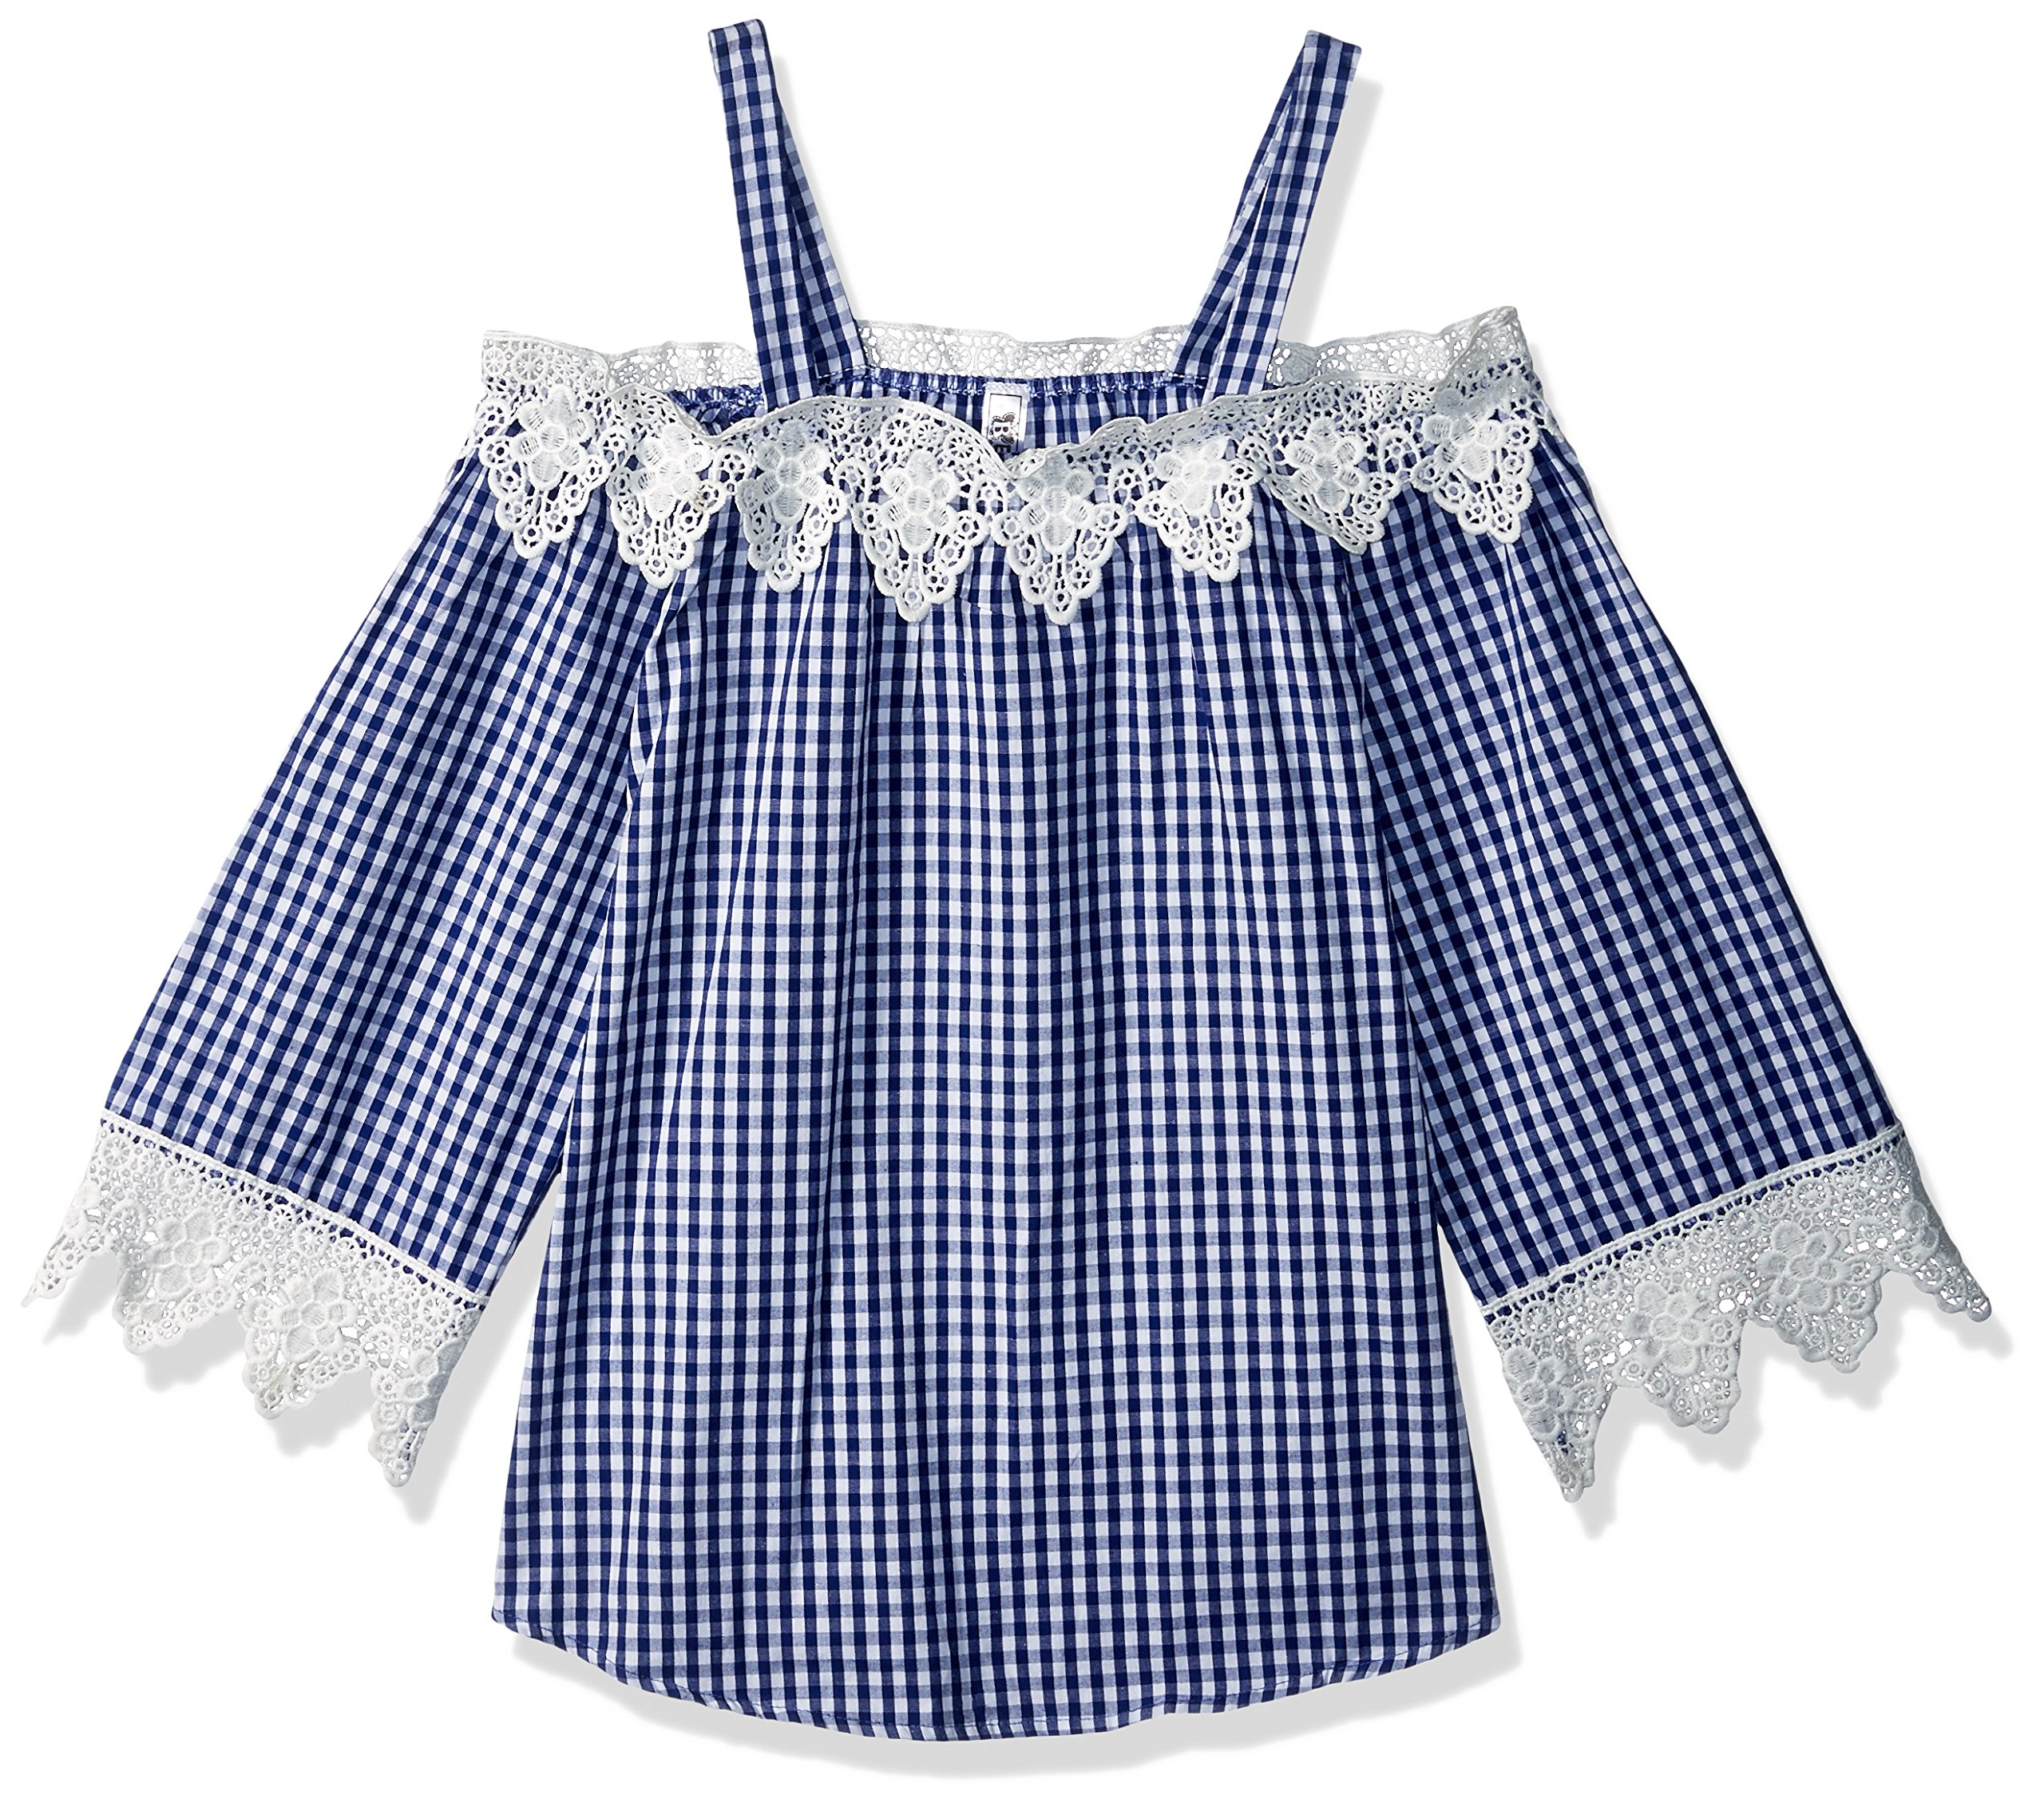 Beautees Big Girls' Off The Shoulder Top, Navy, Large